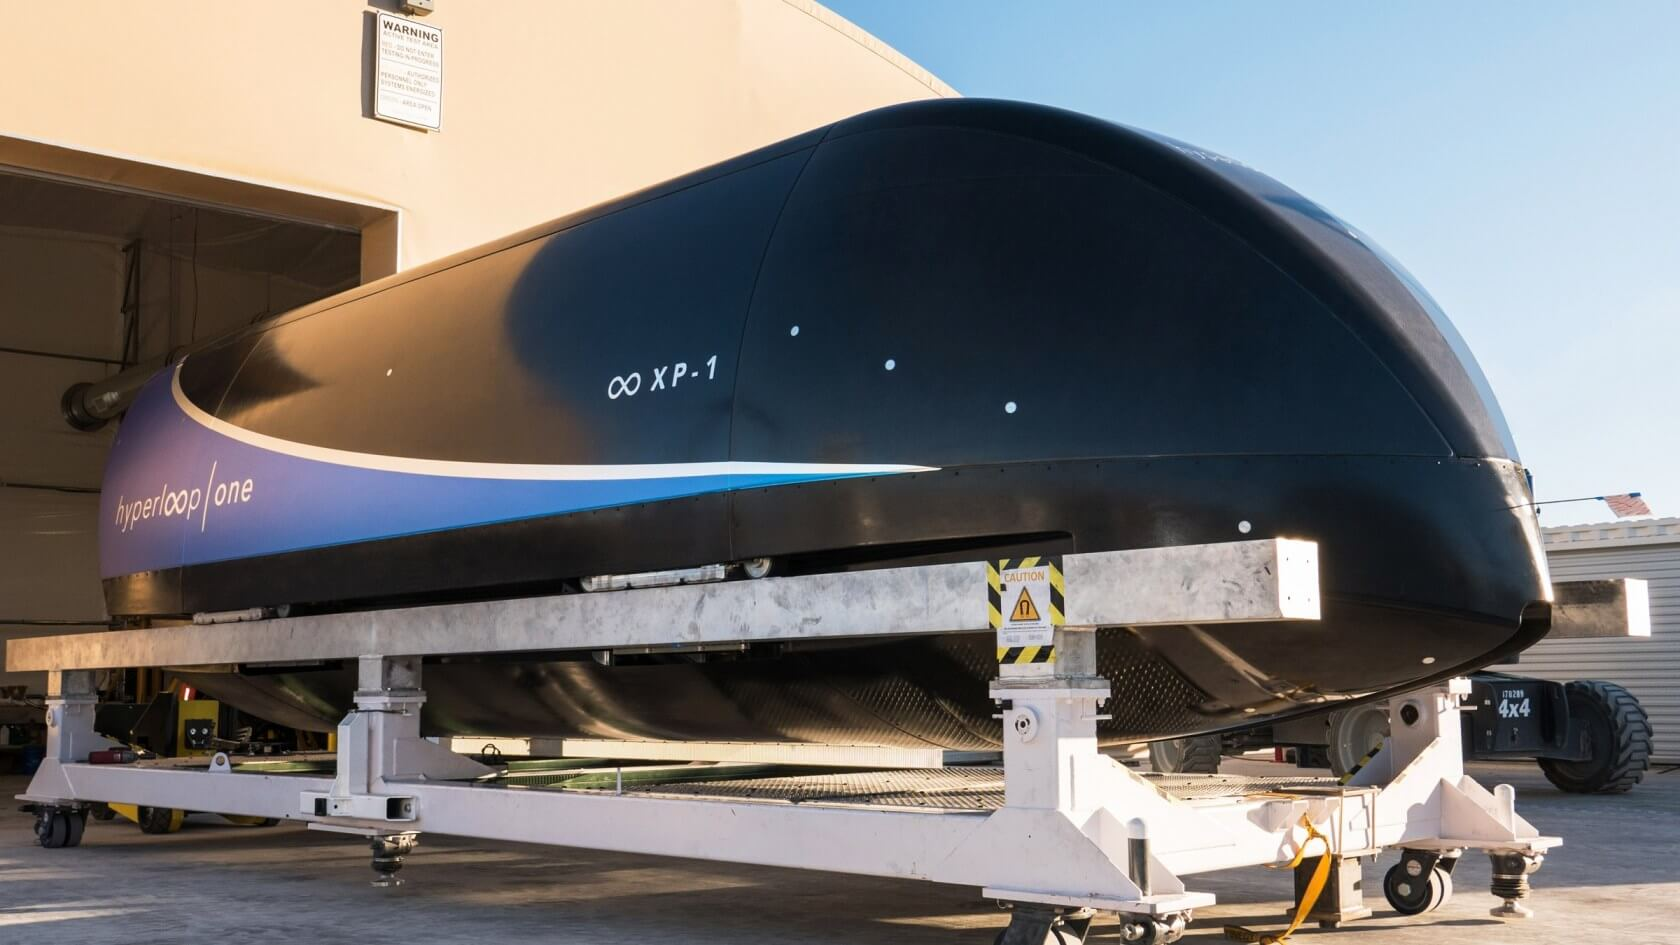 Hyperloop One aims to connect North Carolina's 'Research Triangle'